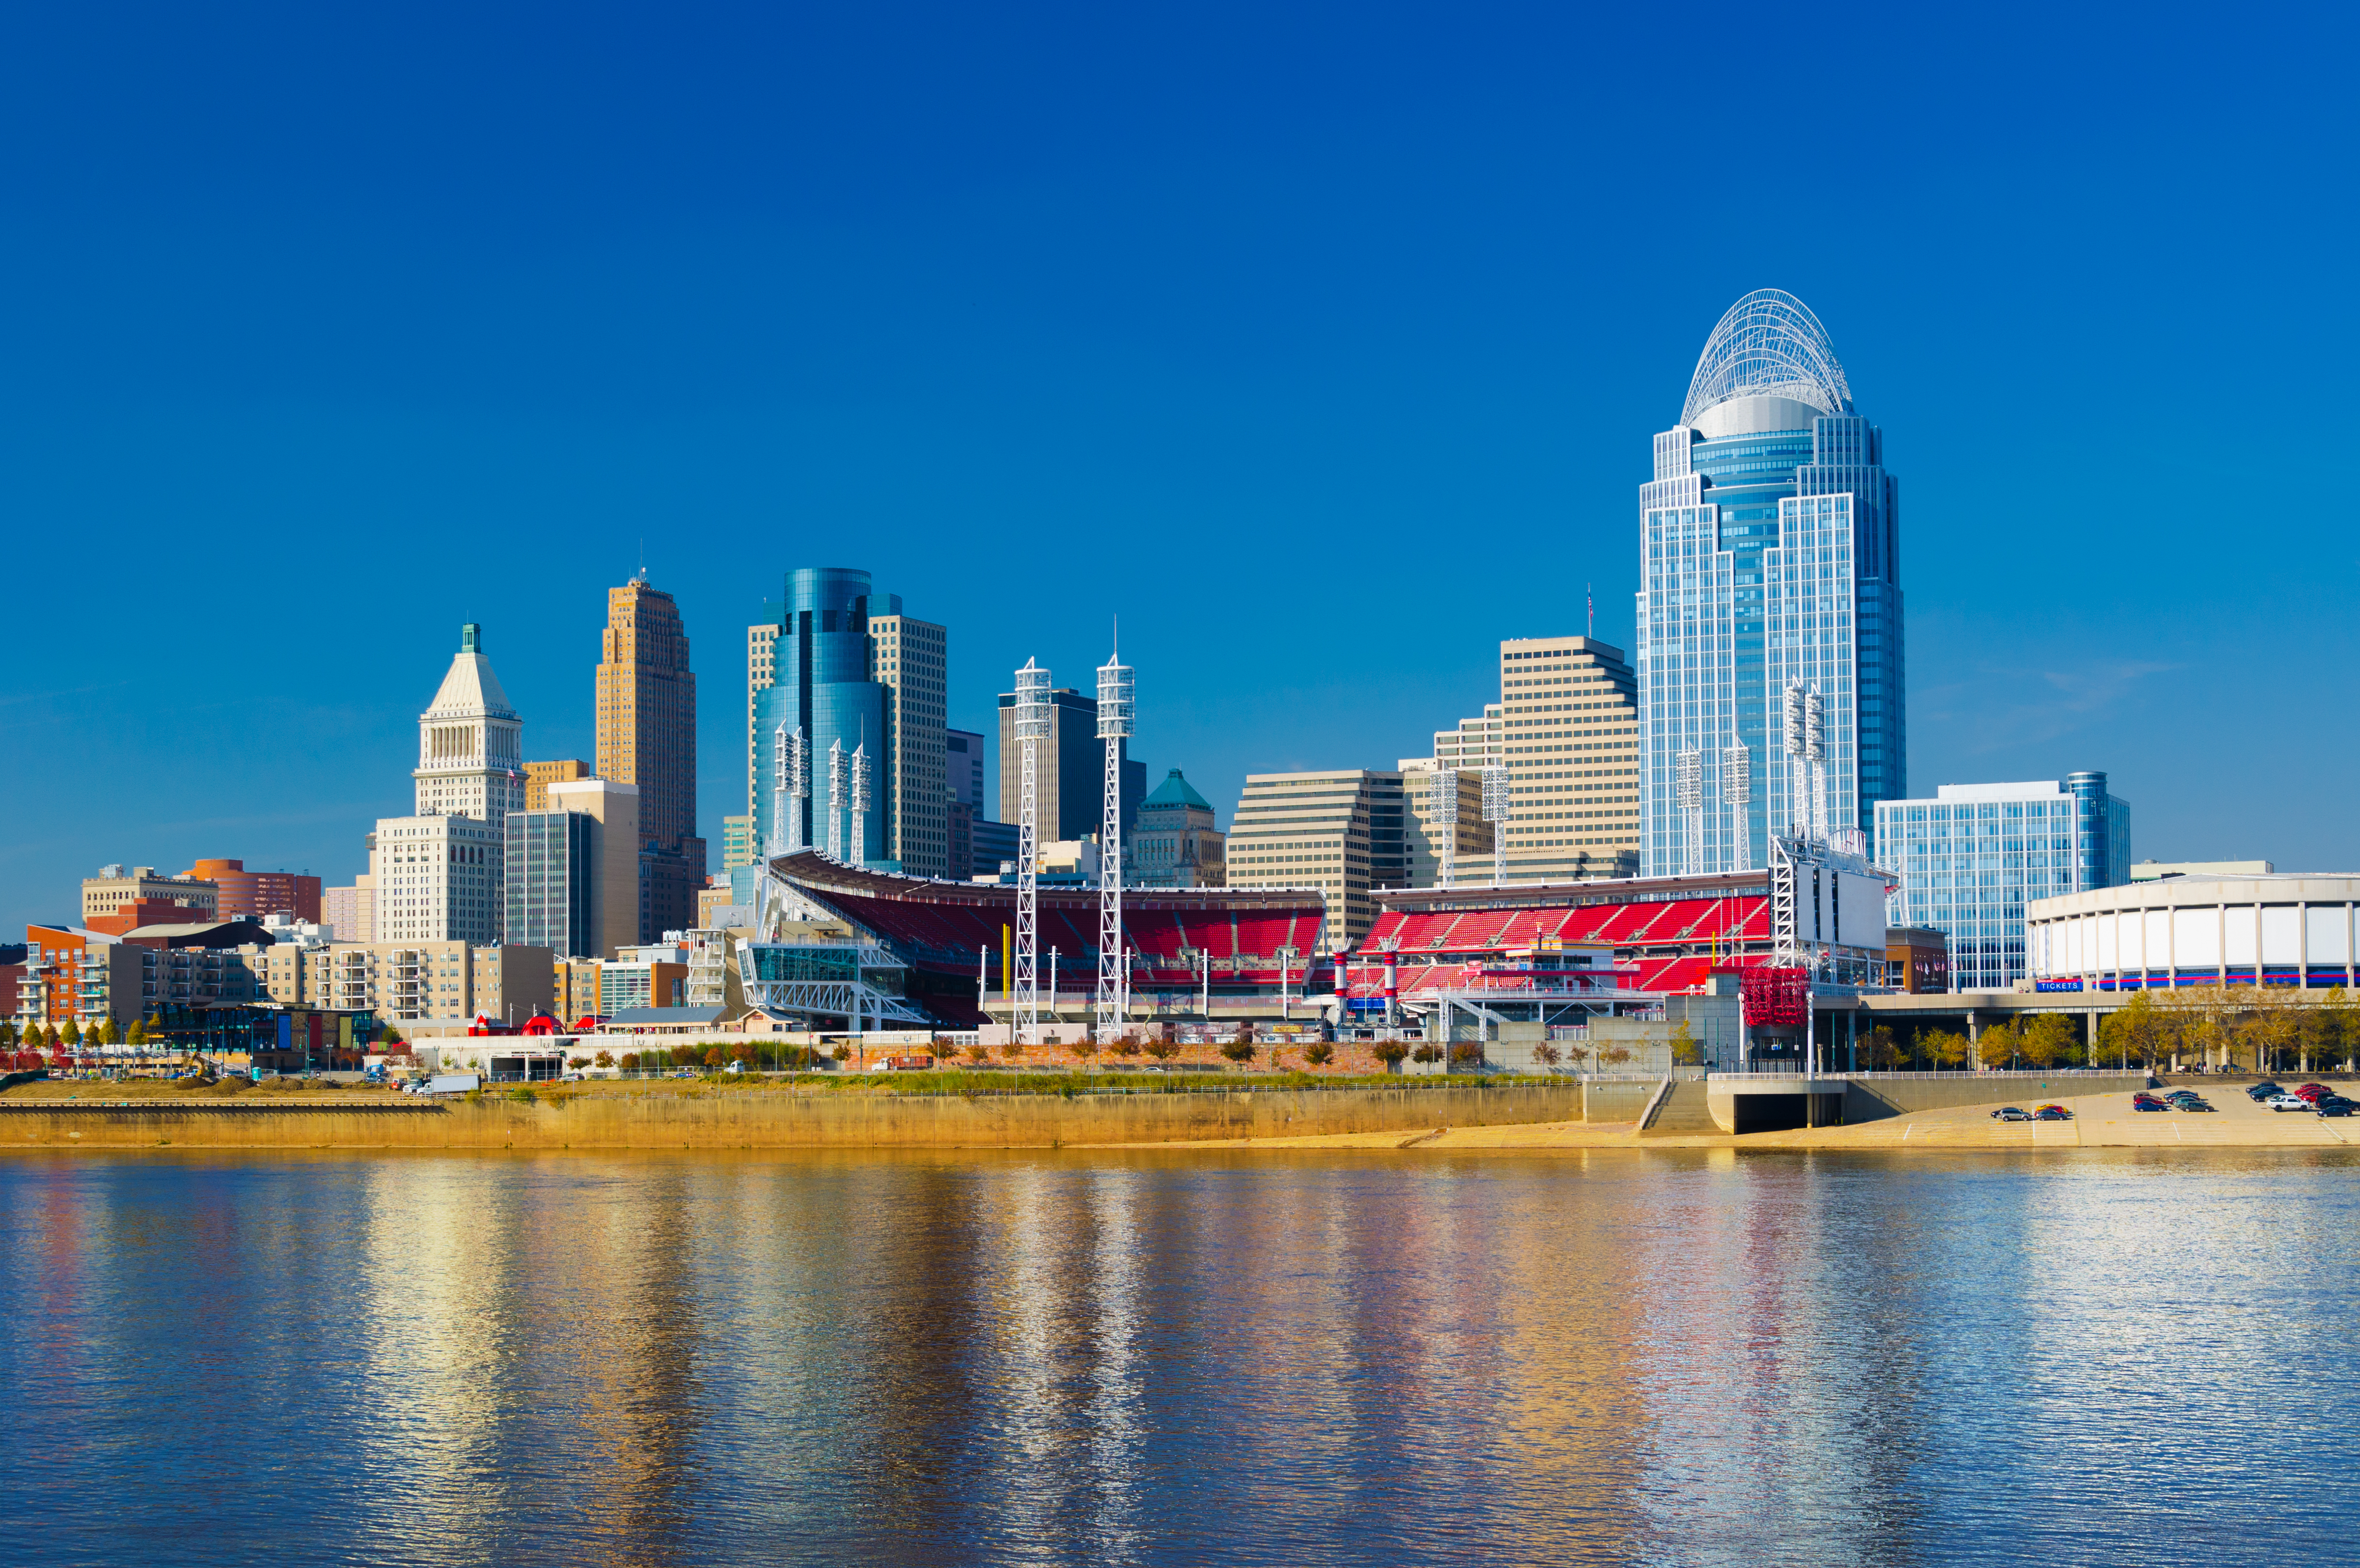 Image of the Cincinnati Skyline